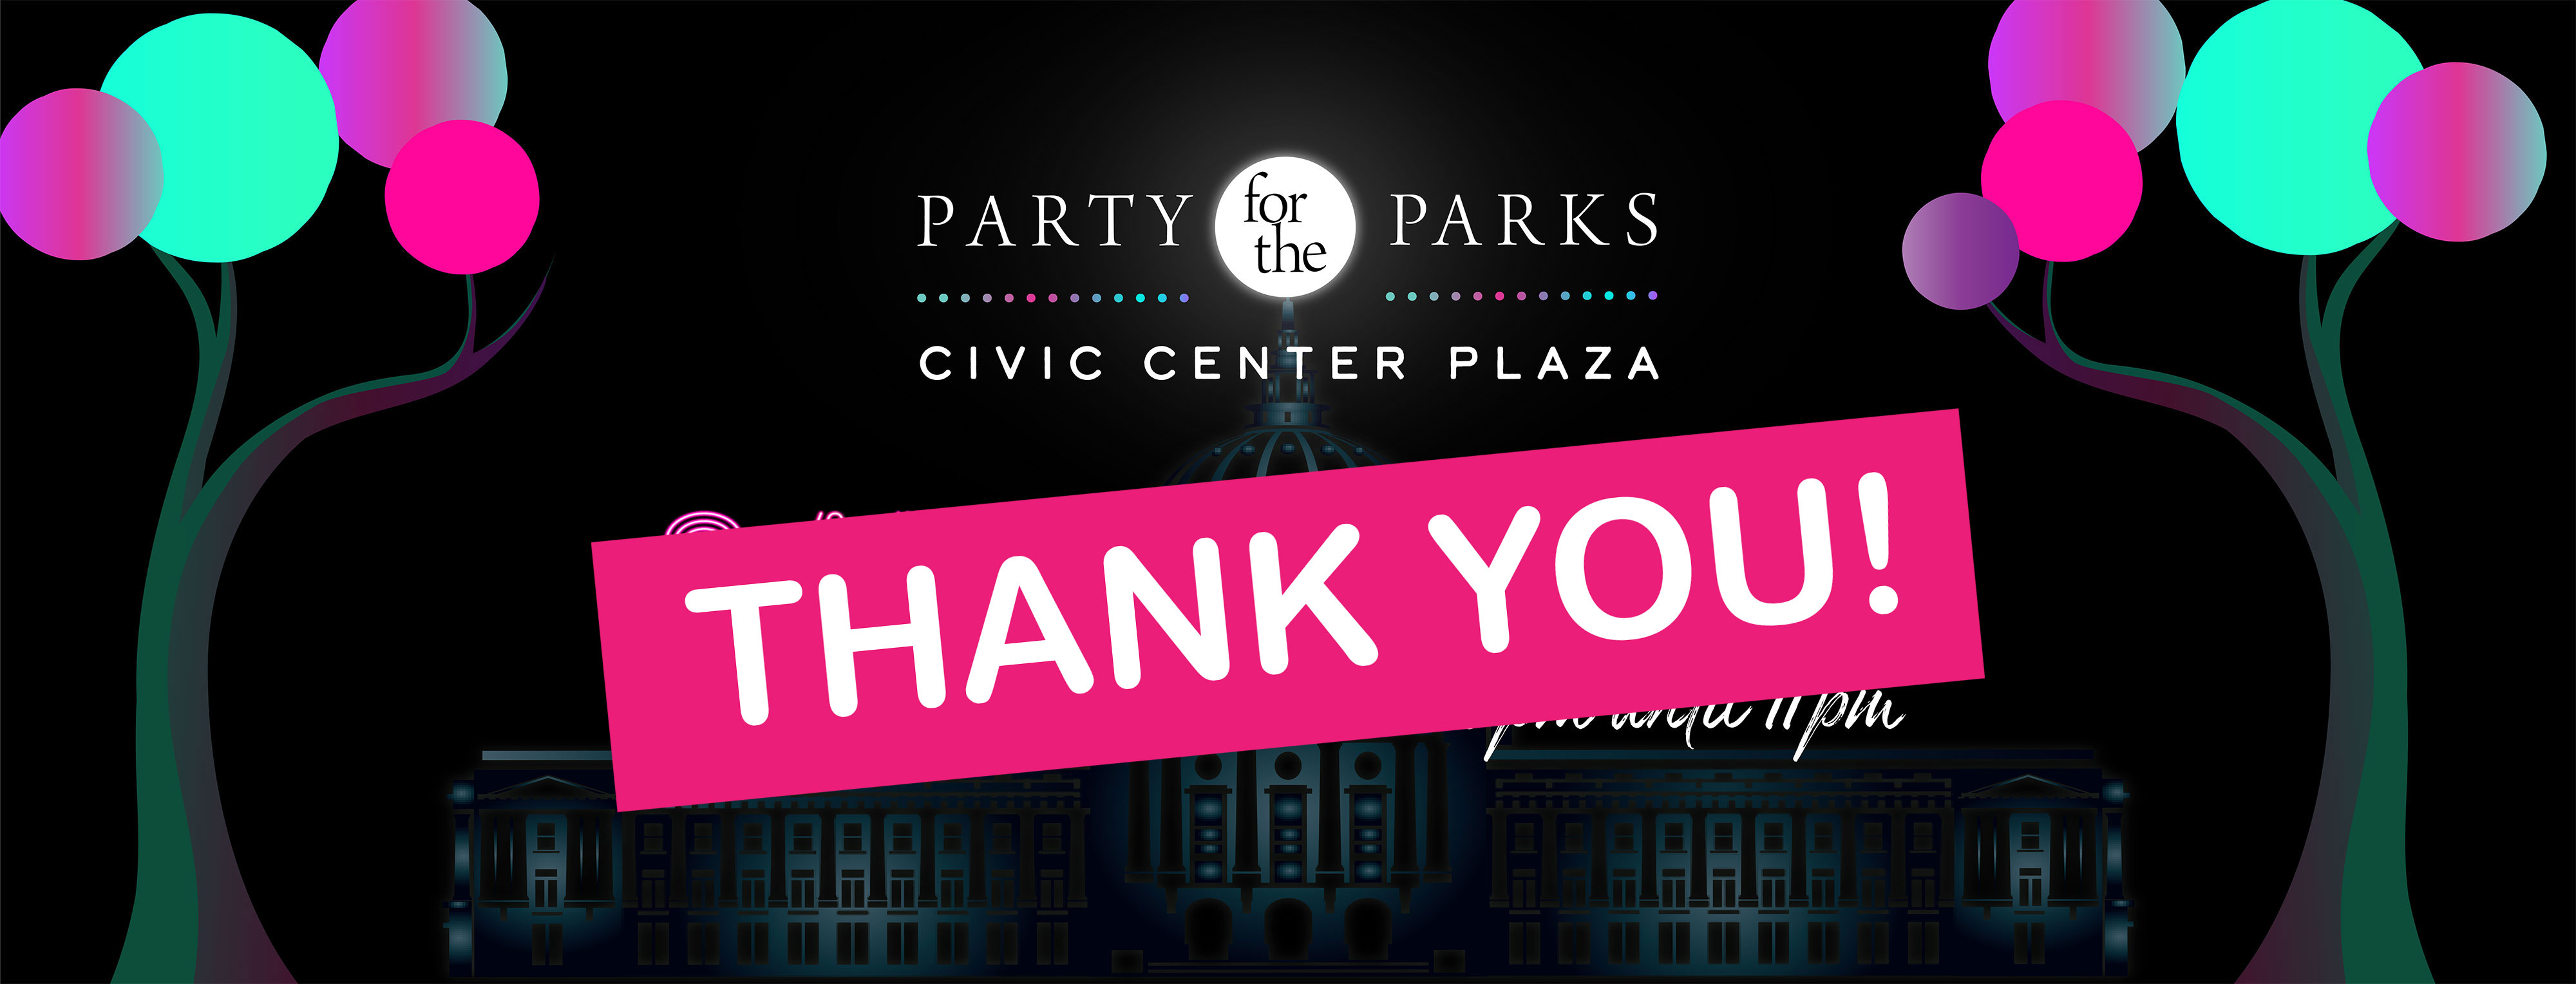 Party for the Parks Thank You